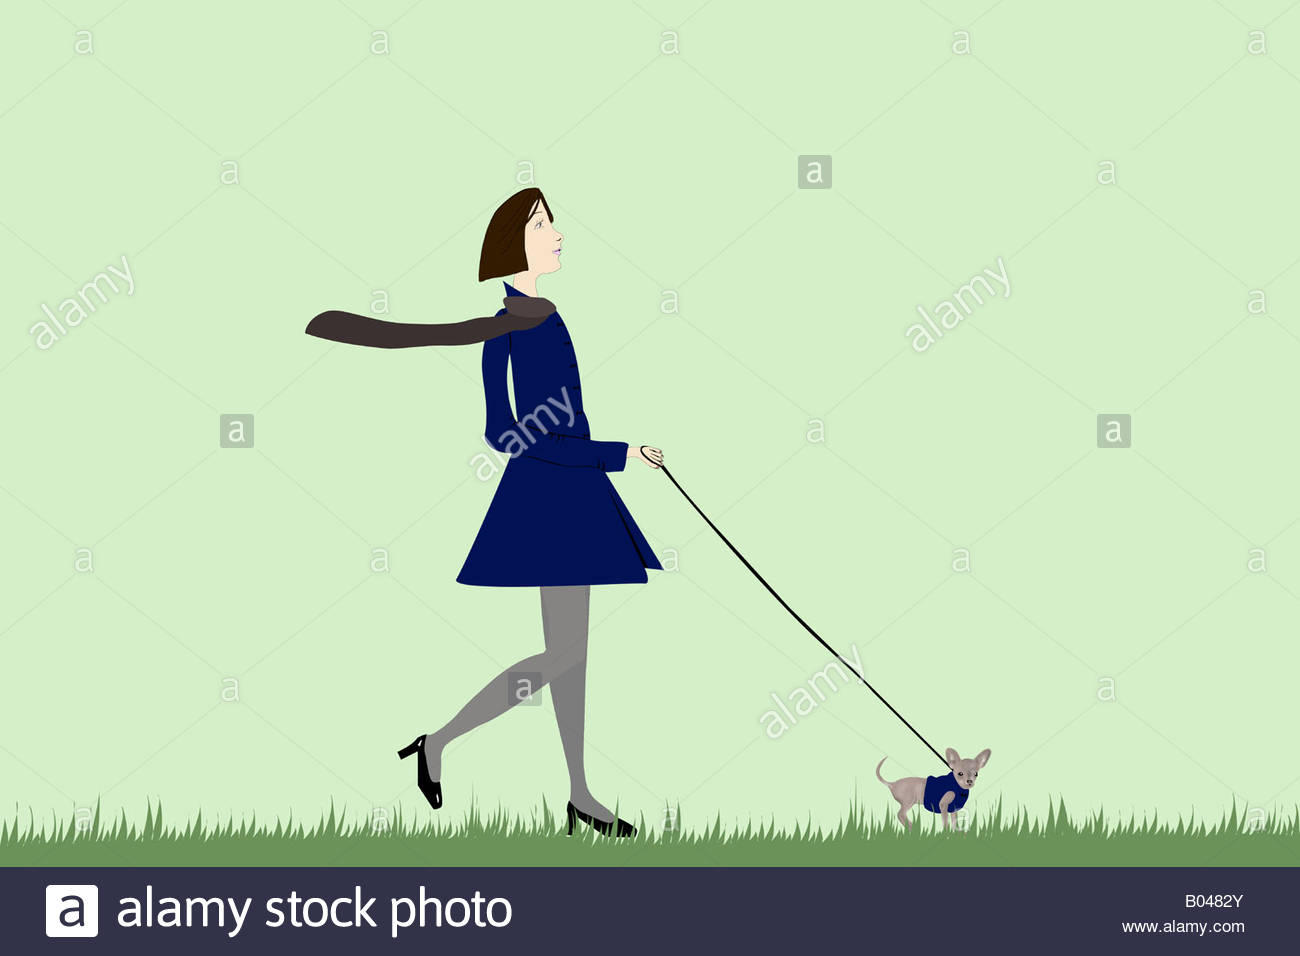 Illustration of a woman walking a dog - Stock Image